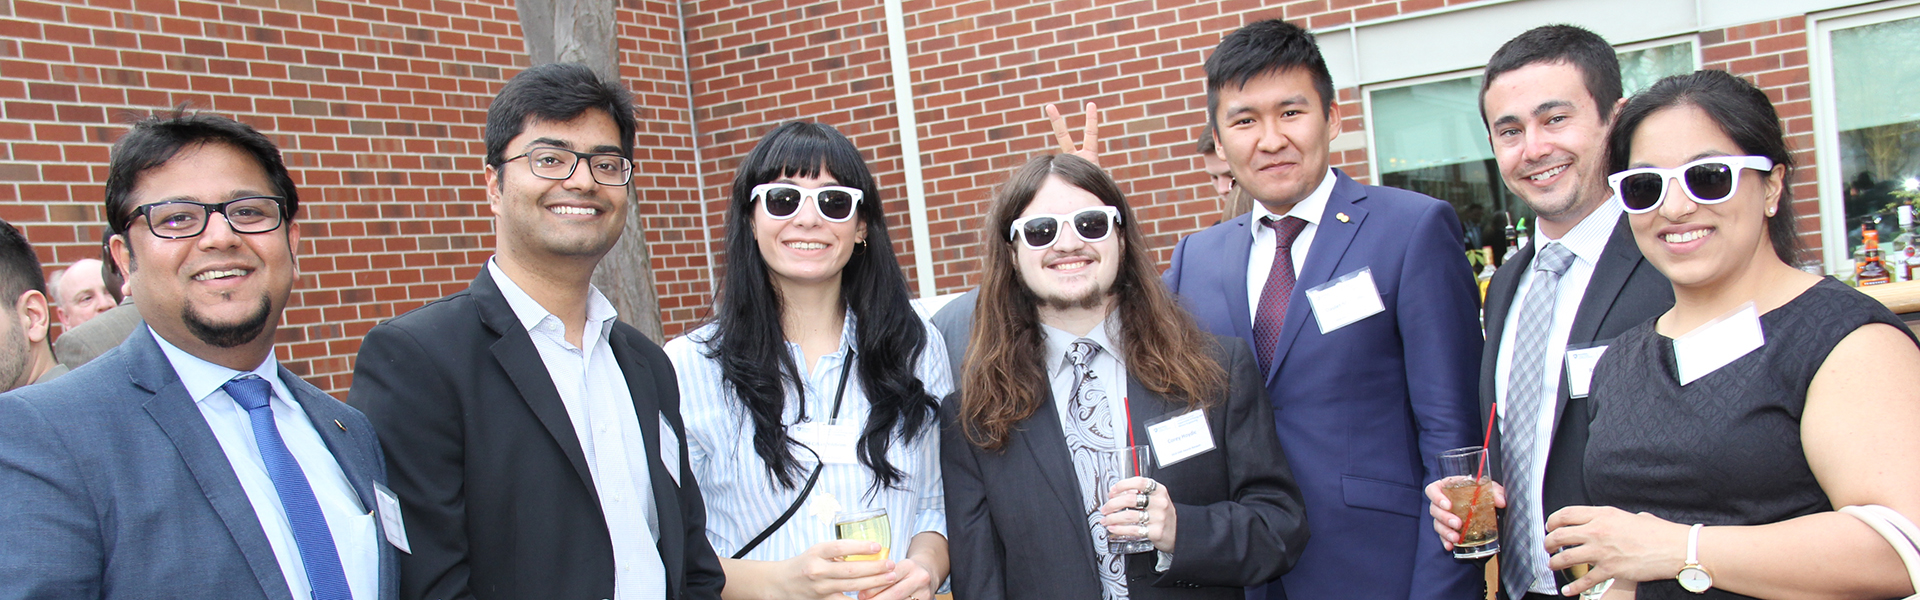 Students in Sunglasses